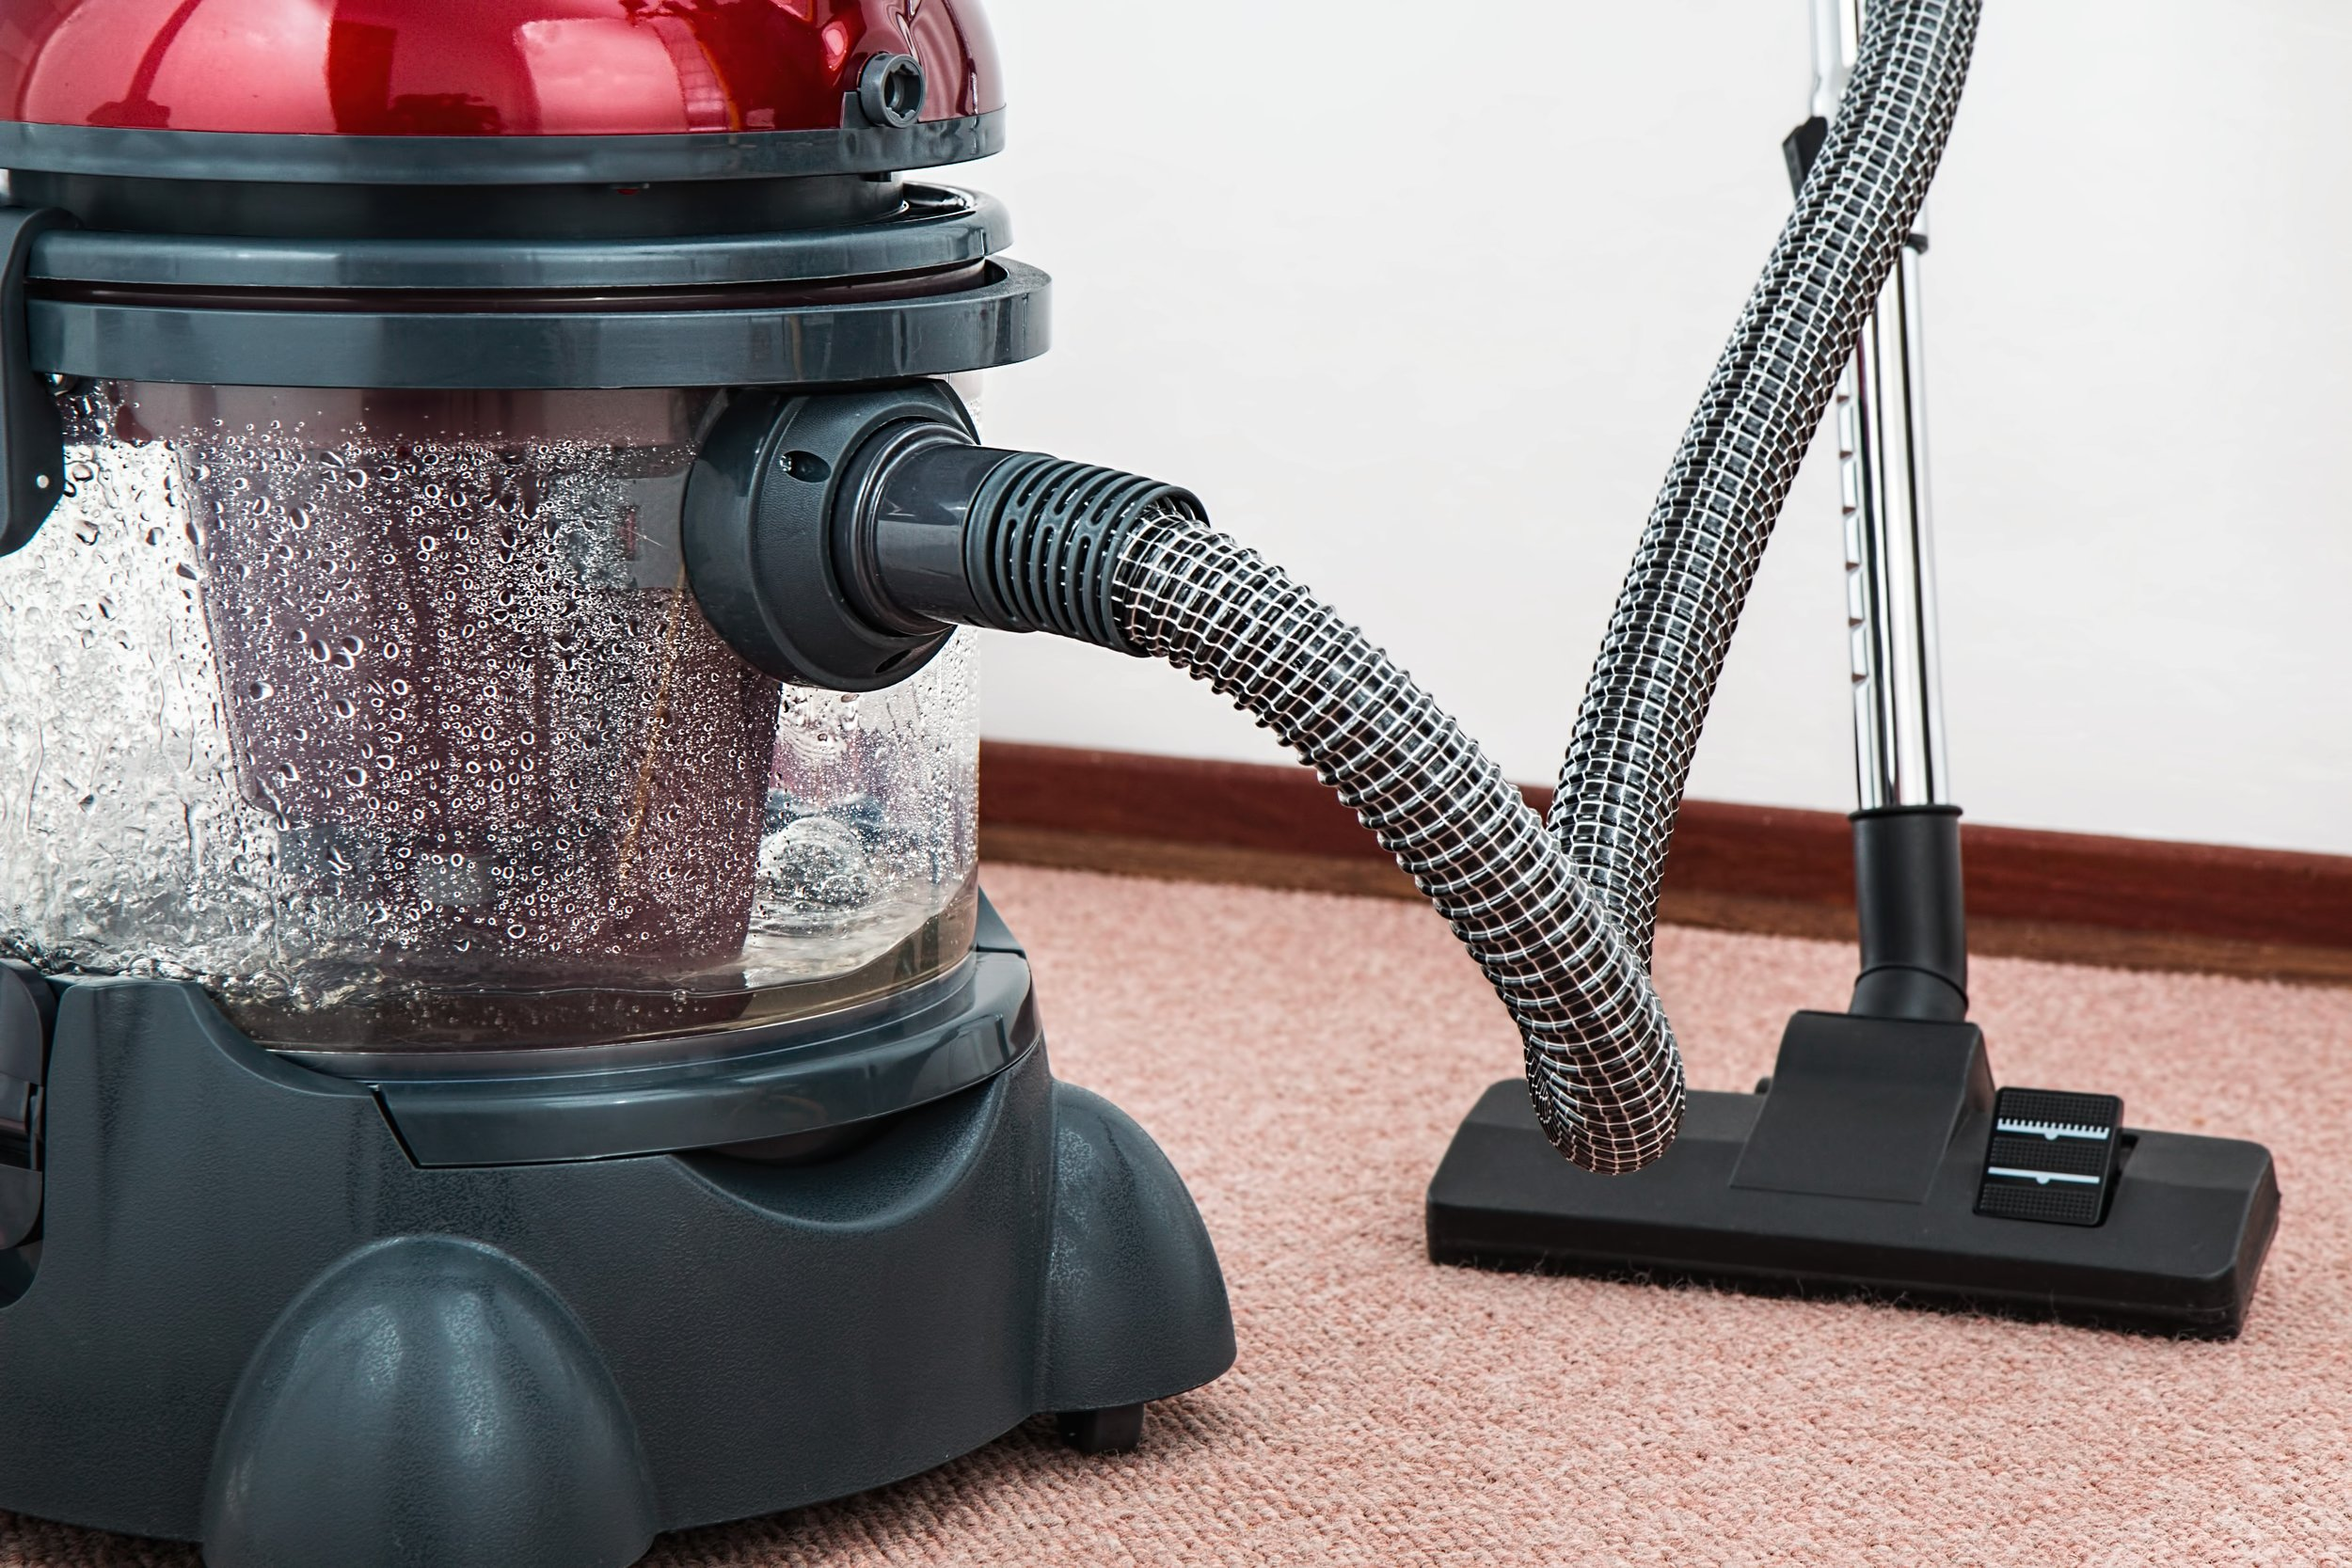 While many people probably know something about carpet, it is a much deeper topic than most realize. There is a lot of information involved, and if you are thinking about installing new carpet, you need to consider it all. For example, are you going to be purchasing carpet for your home, or office? The two locations have very different requirements, which might put you in a bind. Unlike with hardwoods, however, you won't have to choose from dozens of different materials before moving on to other choices, like the size of the plank and if you want to add a finish. No, with carpeting you will spend your time choosing what kind of fabric it is to be made out of before moving on to the fun part: the colors and design. The professionals here at Ozburn-Hessey are happy to help every step of the way, but the main thing we offer is  carpet installation . It is something that is easy in practice but has the potential to go poorly very quickly. With that in mind, we put together this primer so you can focus your energies on picking the right carpet, and allow us to worry about everything else.   Built to Last   Unless you are the kind of person who switches things up on a regular basis, you probably want something that is going to last for quite a while.  Carpet  can be very durable, or it can last for a small amount of time before it needs to get switched out. It really depends on a couple of factors that all play into your decision. The first and foremost is the fiber. Most carpet, unless someone specifically wants something natural, such as wool, is made of nylon. Nylon is a pretty durable material in its own right, but there is a variant called nylon 6,6 which is particularly durable, and usually comes with a bit of extra stain and soil protection. It is a better choice than most of the other fibers, such as polyester, wool, or polypropylene. When it comes to durability, you also want to look at the twist, which is how the fibers are spun into yarn and then twisted into t